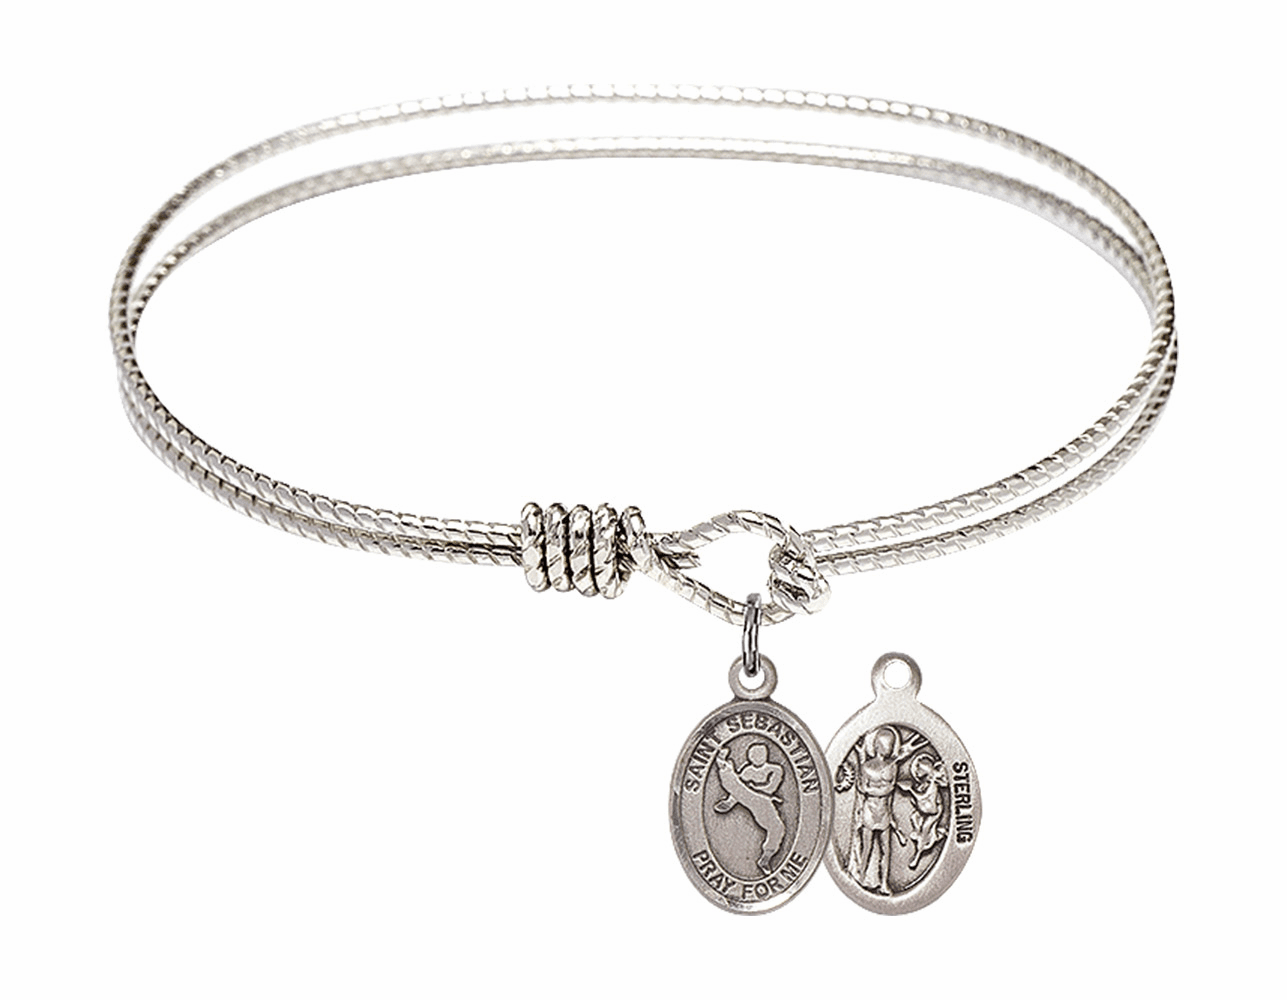 Twist Round Eye Hook St Sebastian Martial Arts Bangle Charm Bracelet by Bliss